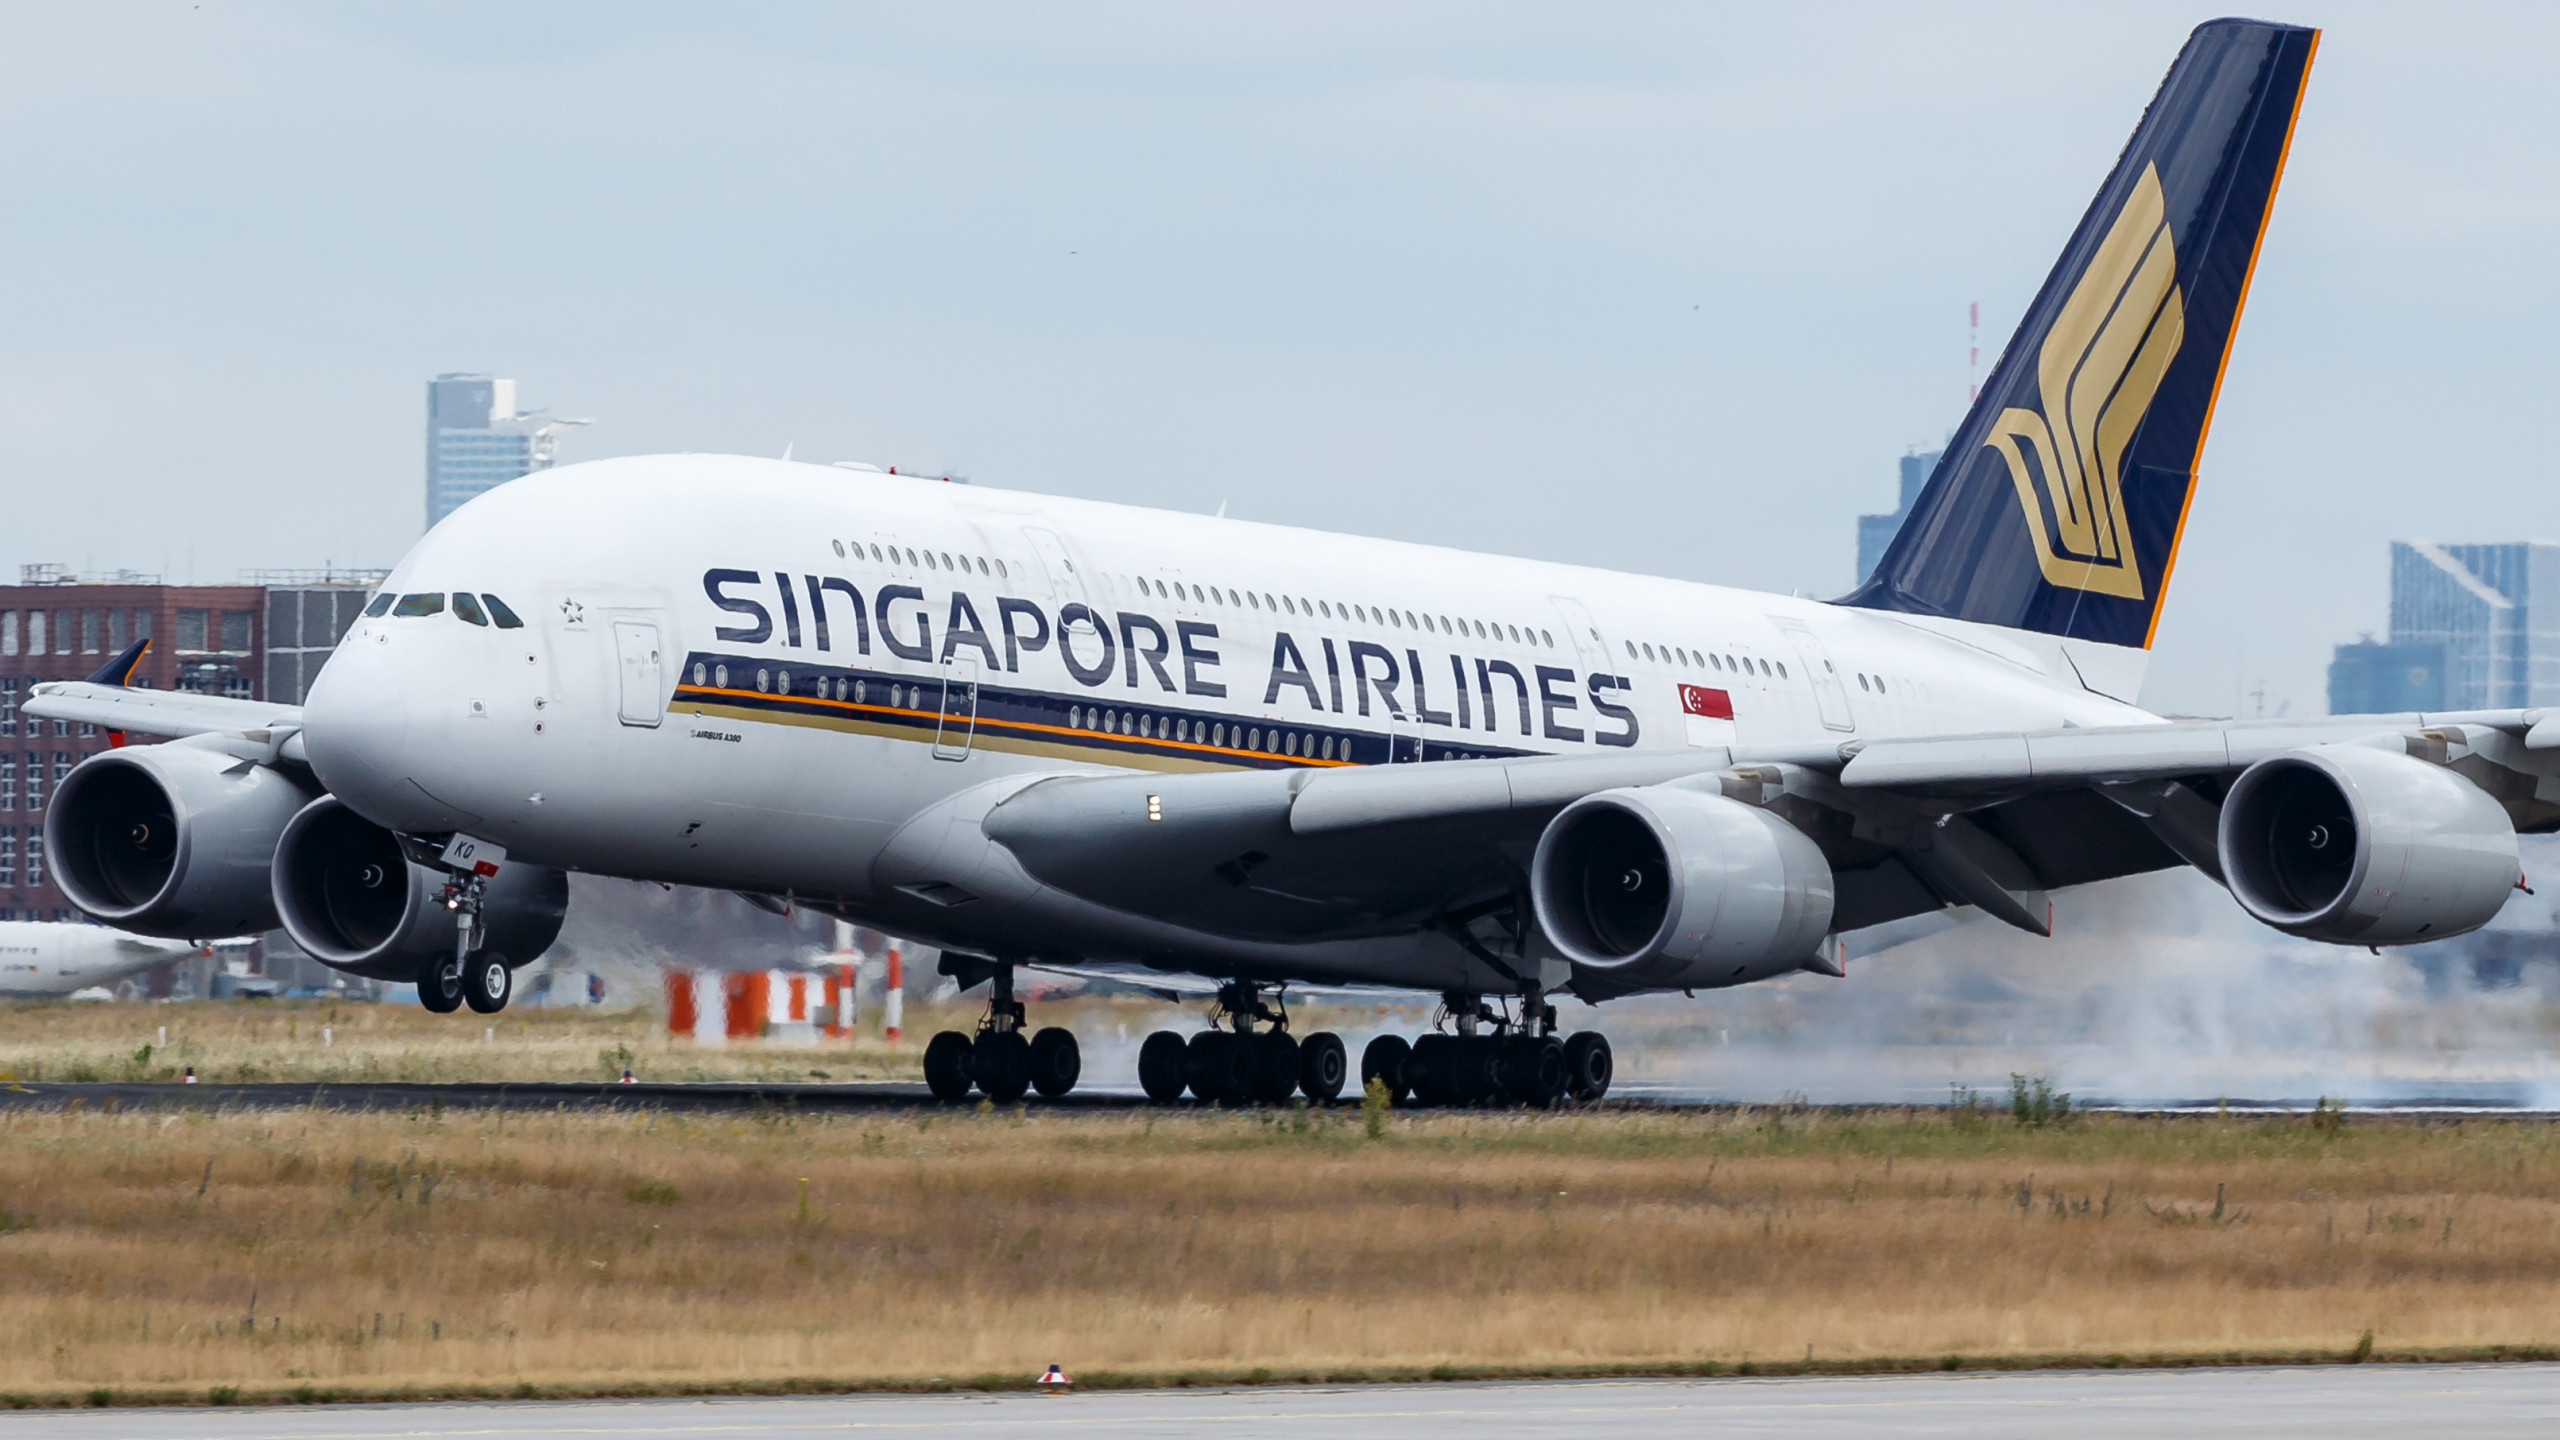 Singapore Airlines to operate the world's shortest Airbus A380 flight